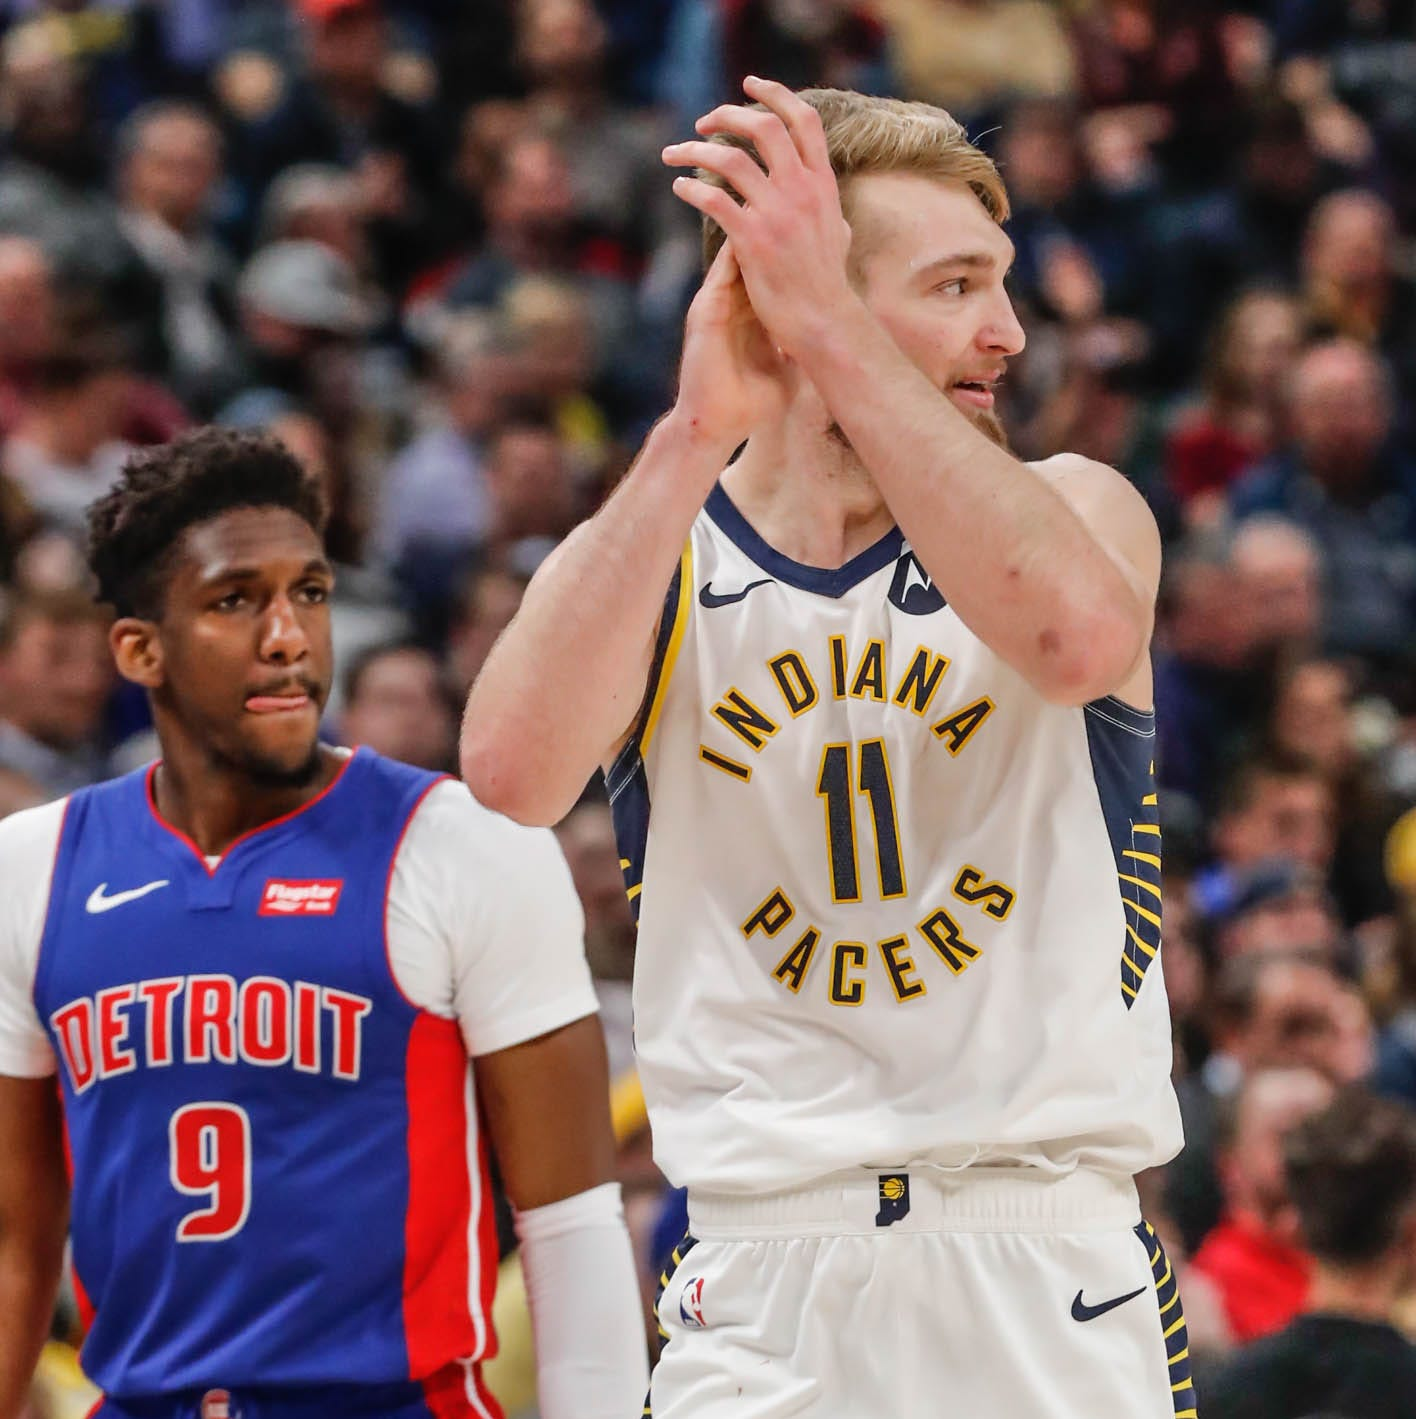 Pacers fight 'fire with fire,' bully physical Pistons inside to end 3-game skid